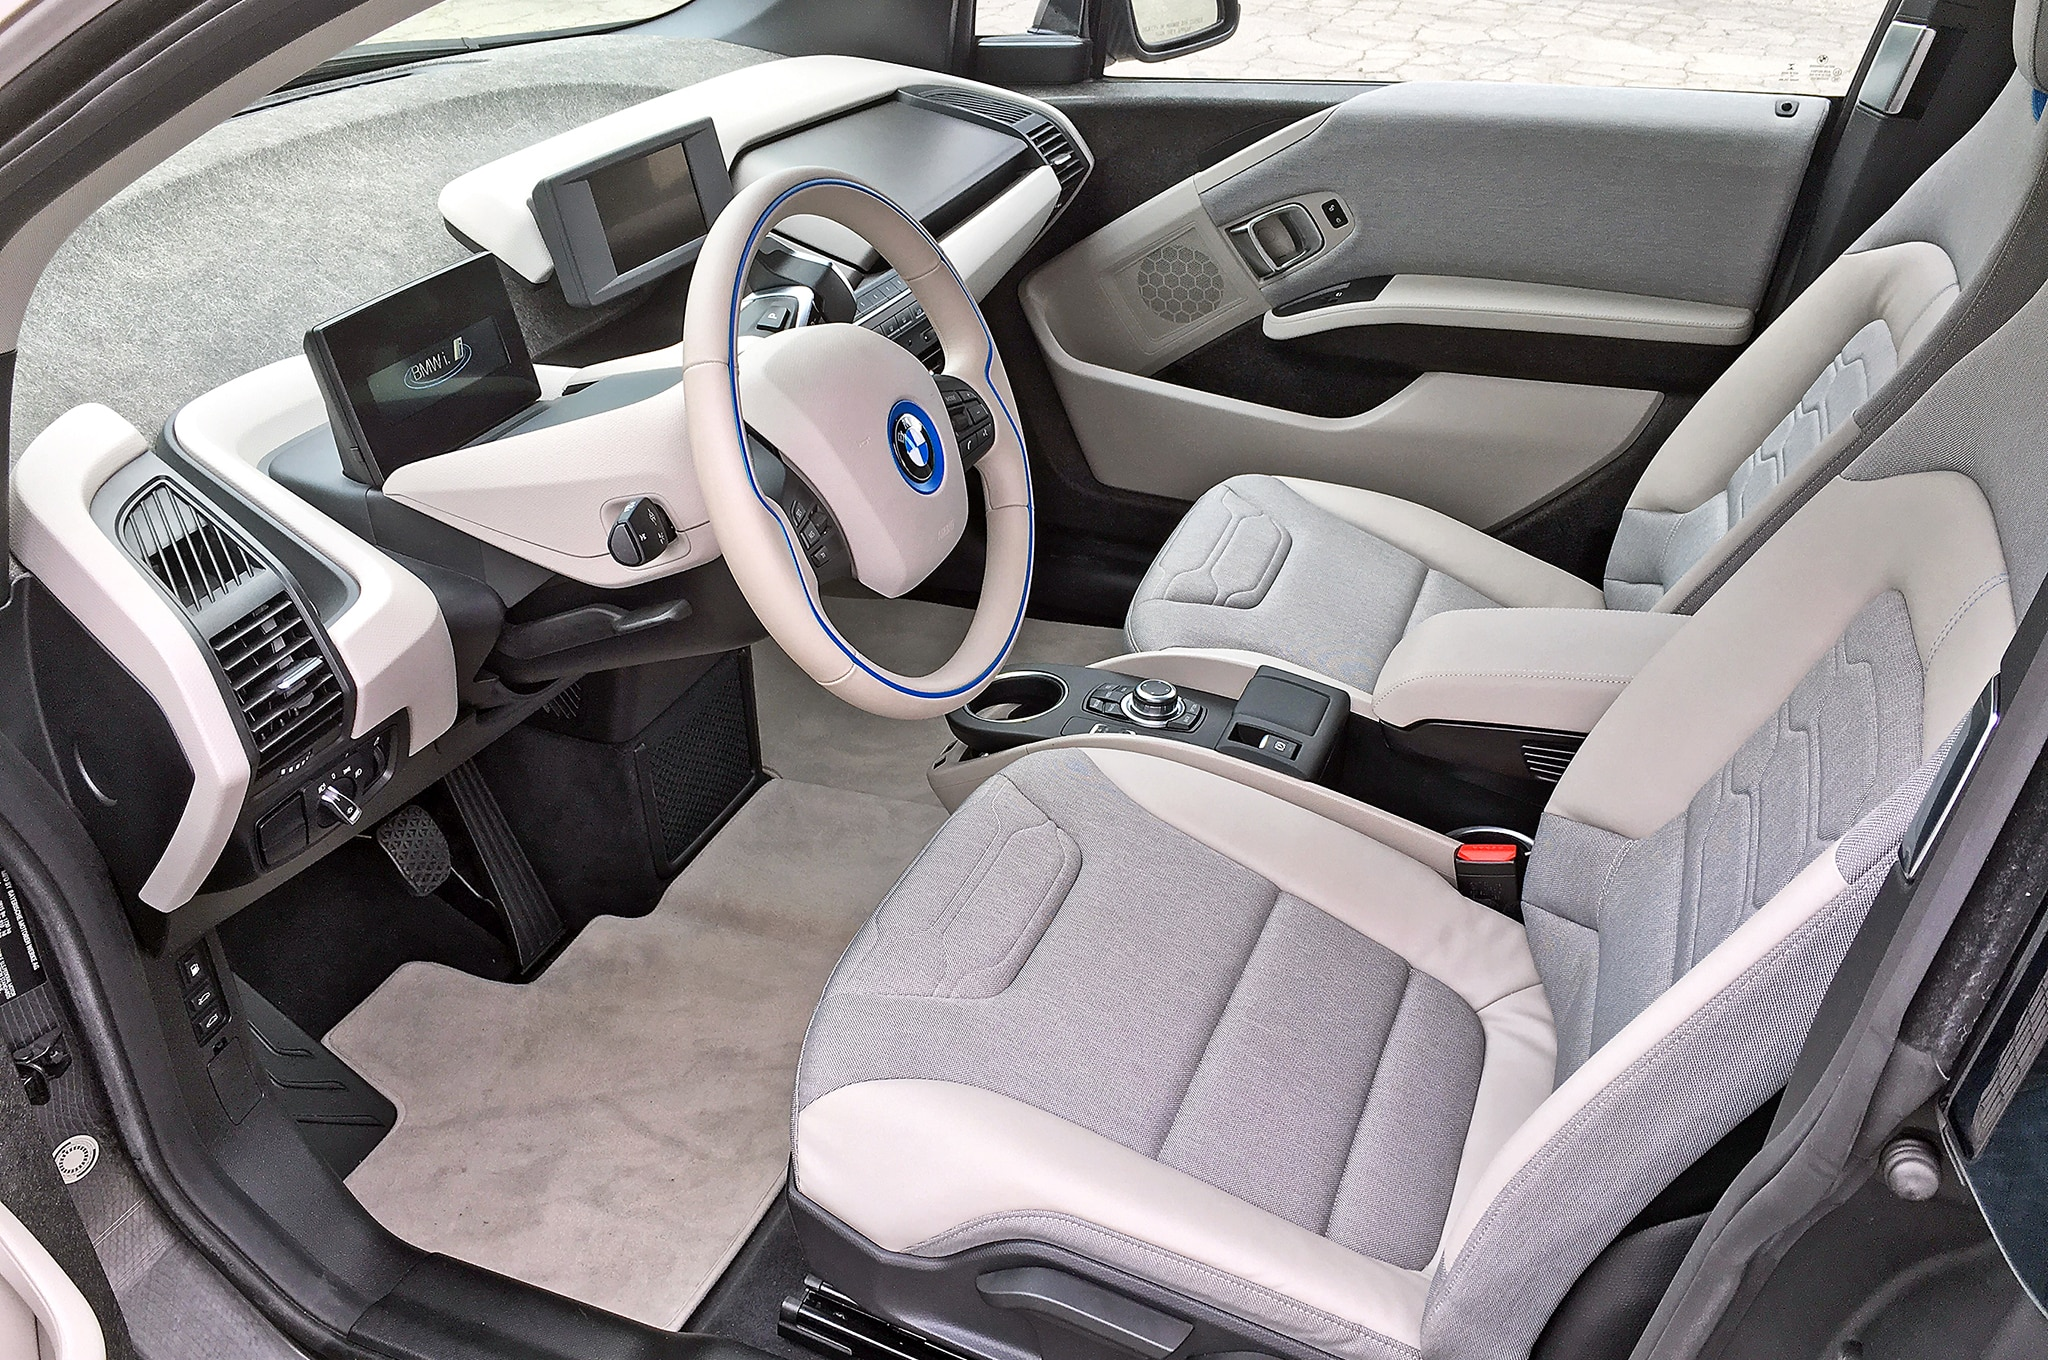 Four Cool Things About the BMW i3 with Range Extender